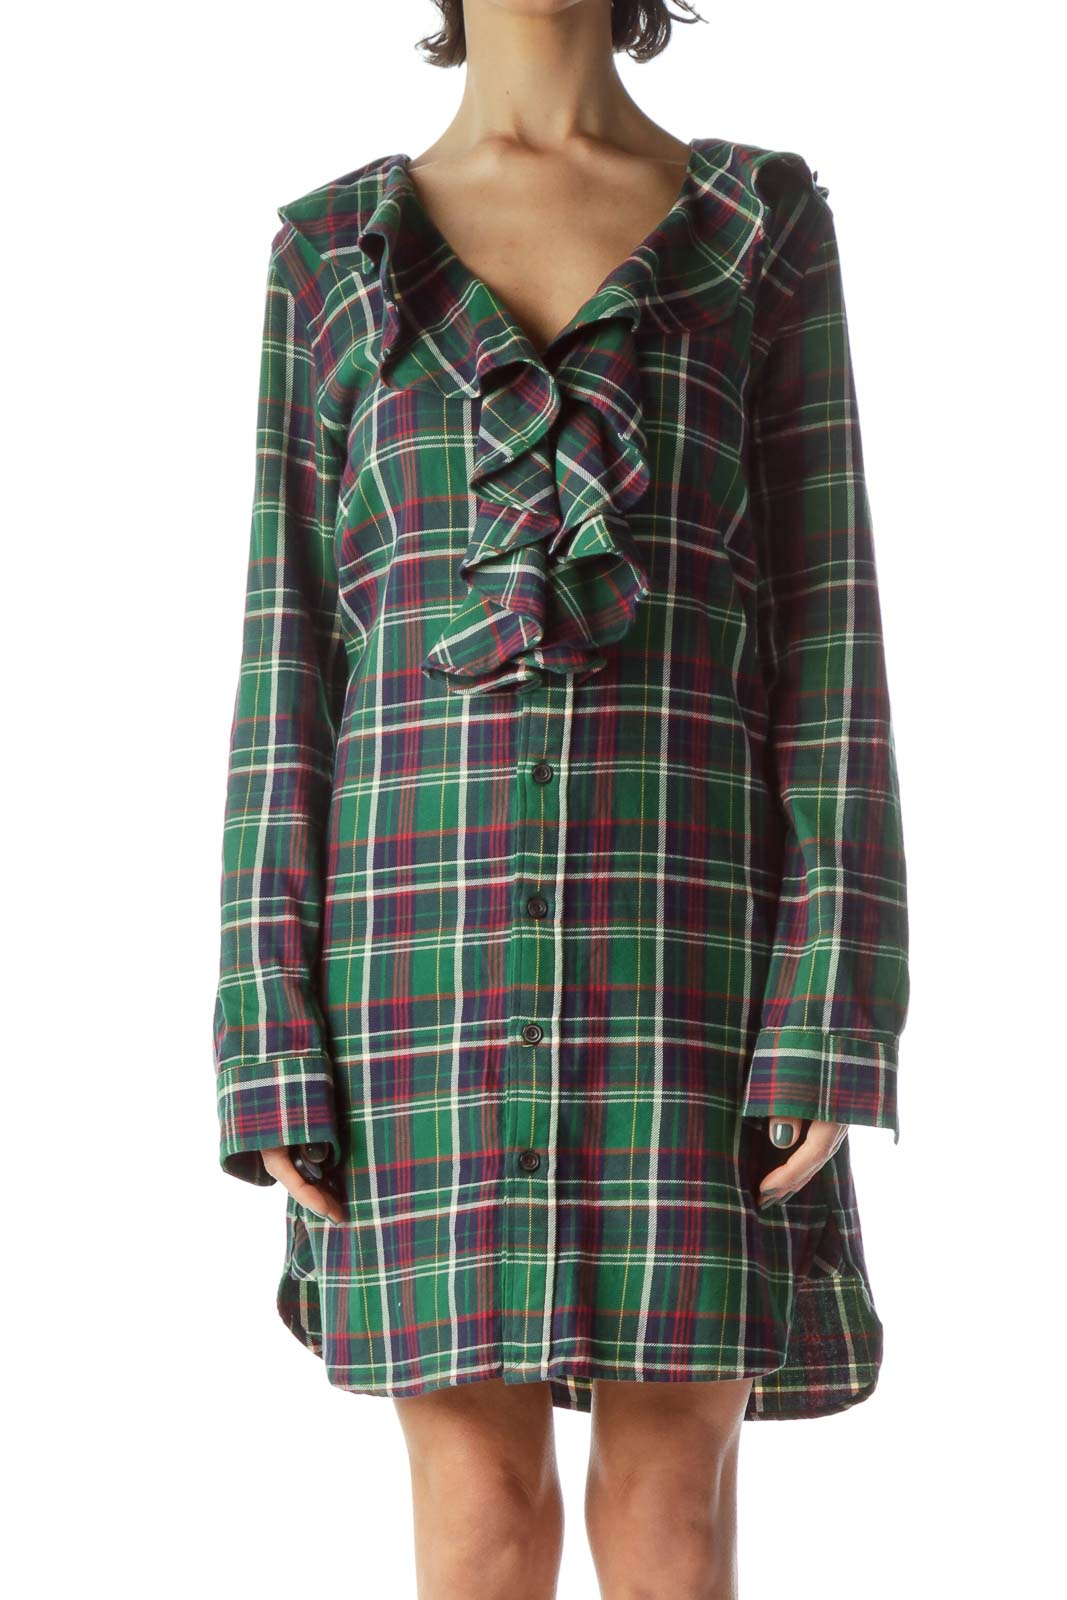 Green Red Blue Plaid 100% Cotton Knit Dress Front